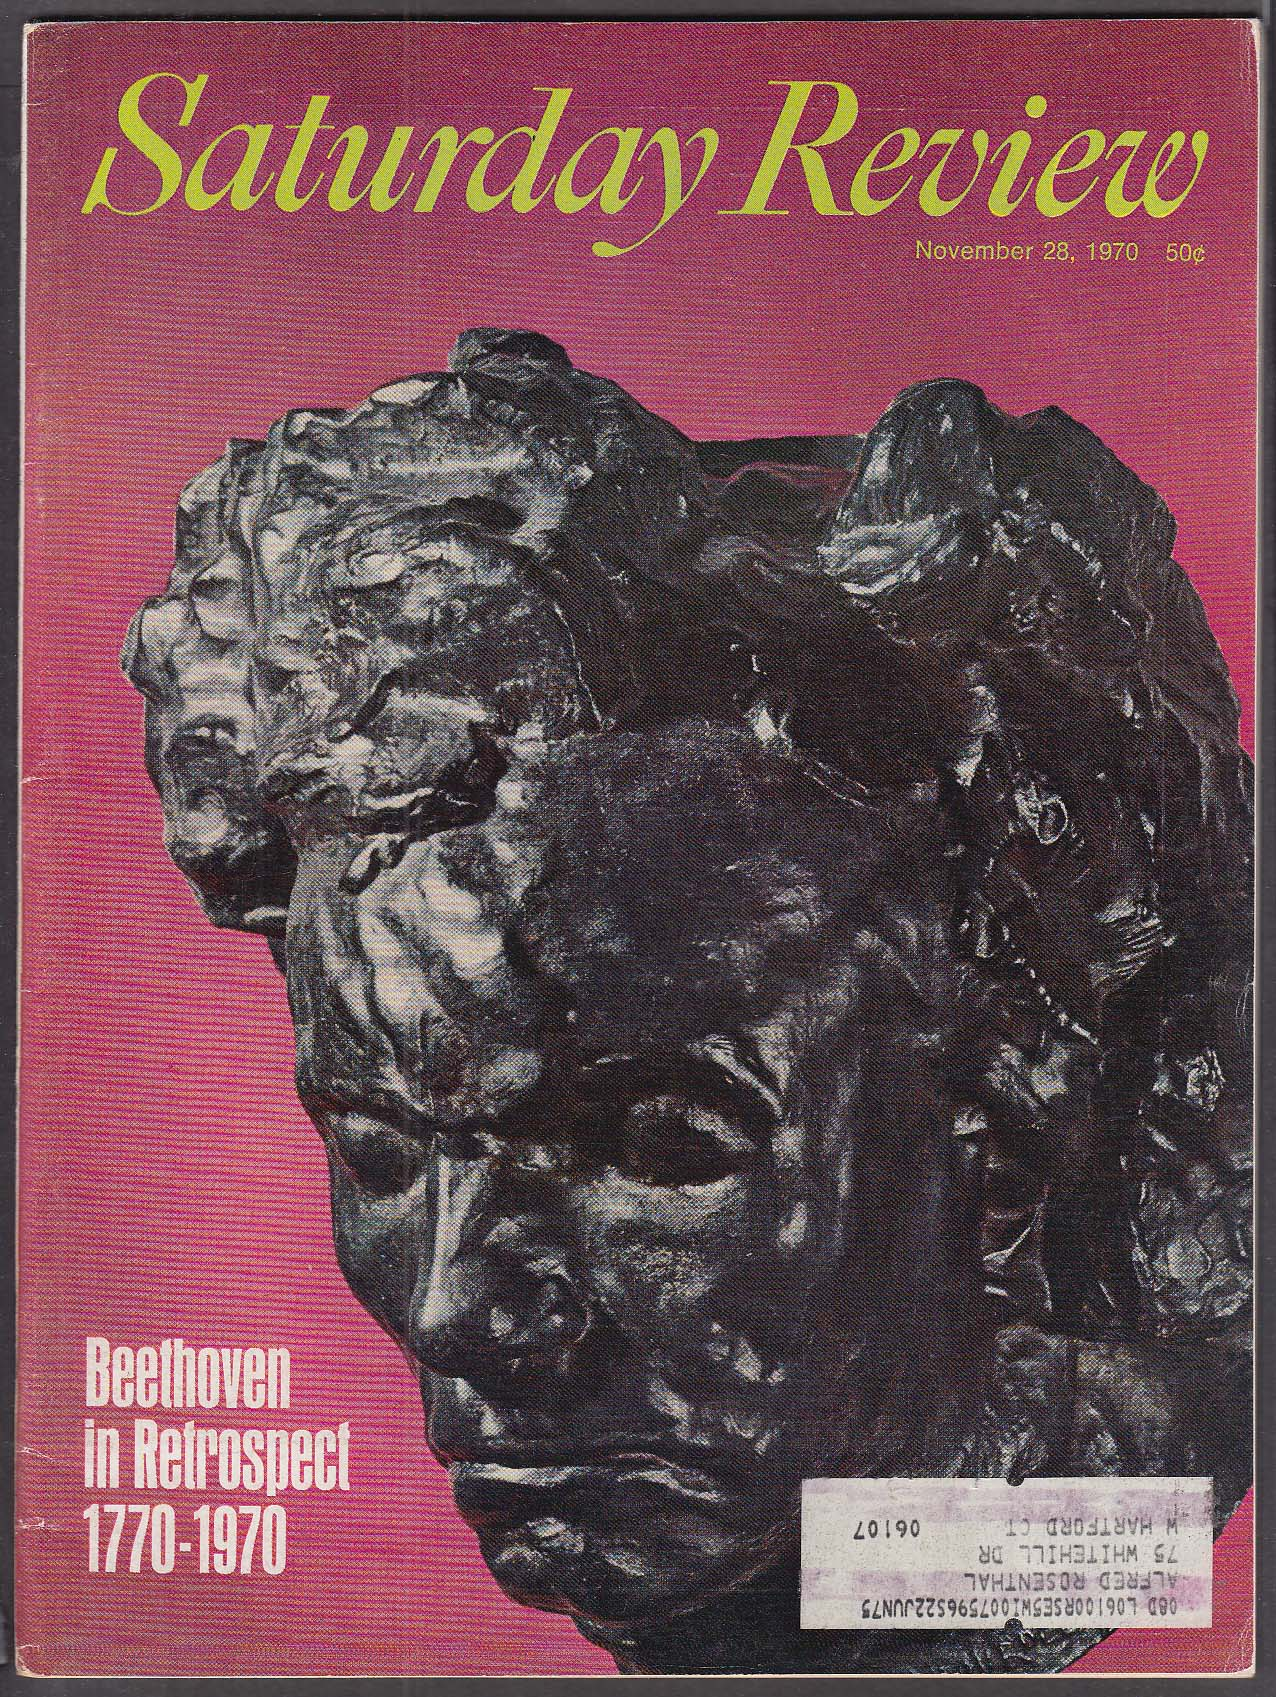 SATURDAY REVIEW Beethoven in Retrospect Wechsberg on Hungary ++ 11/28 1970